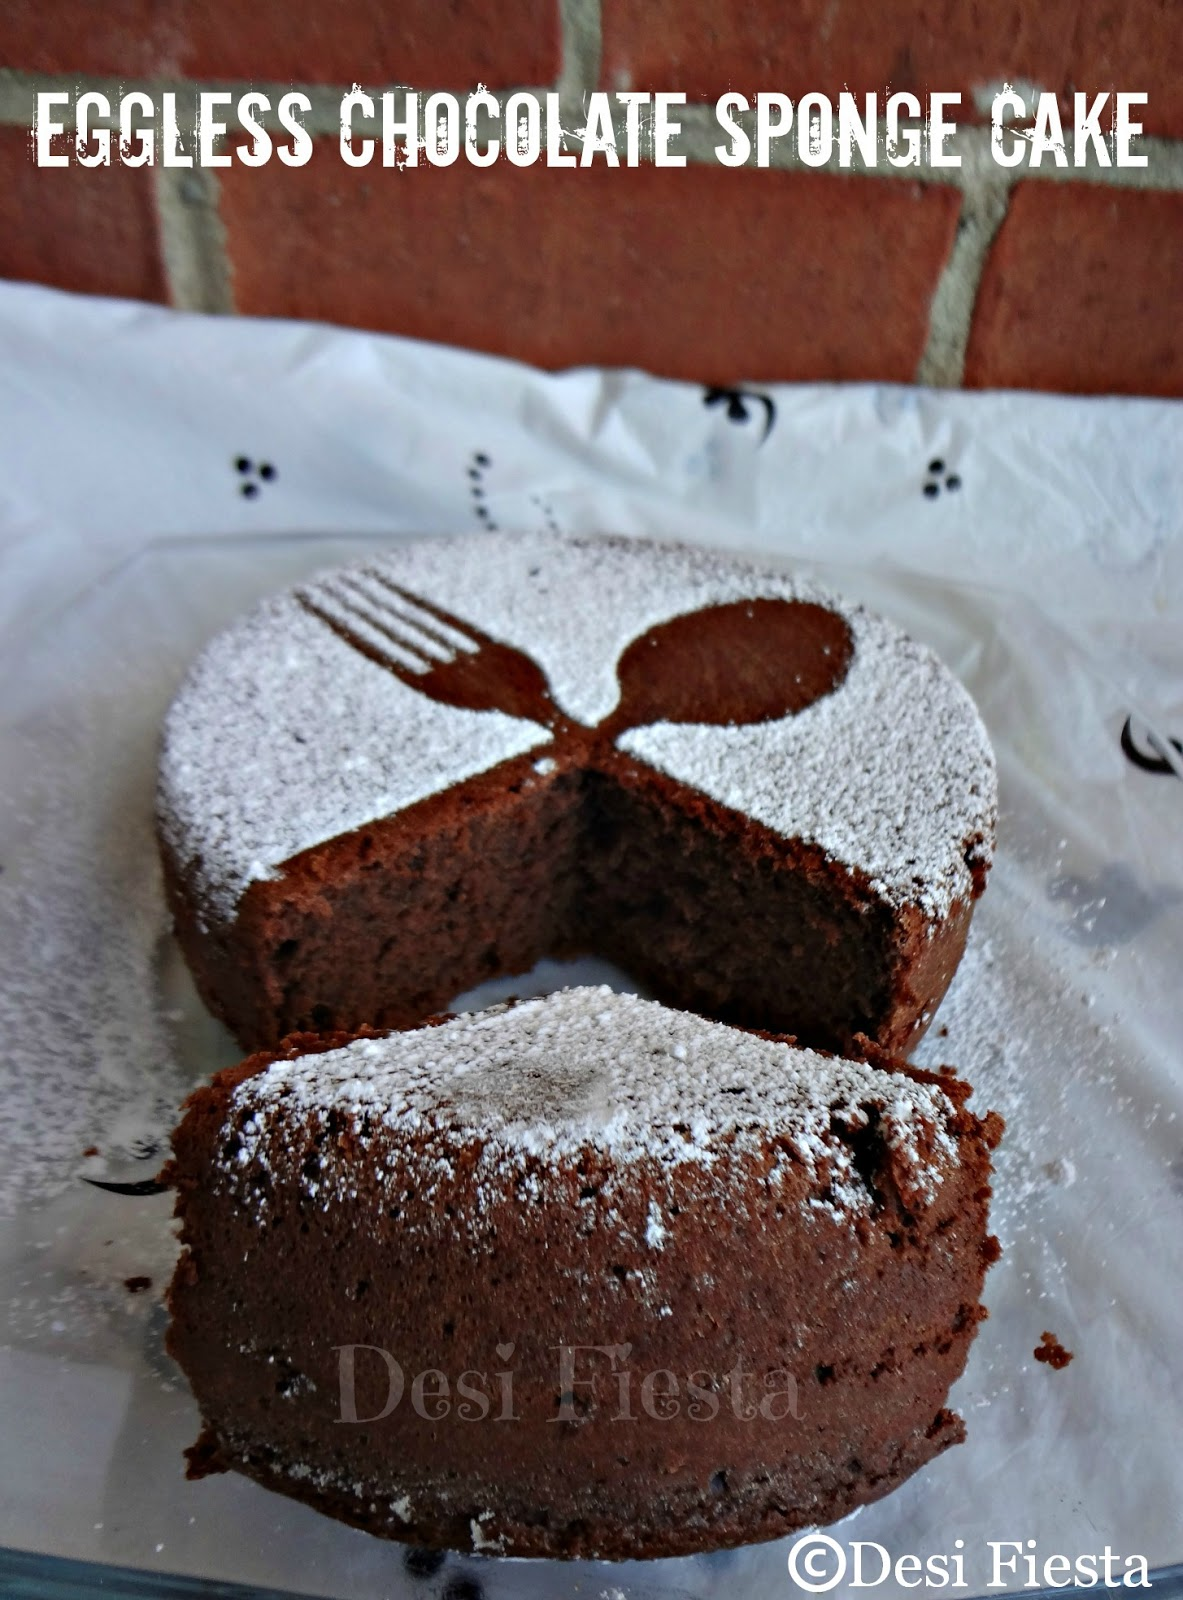 Eggless chocolate sponge cake desi fiesta for Chocolate sponge ingredients